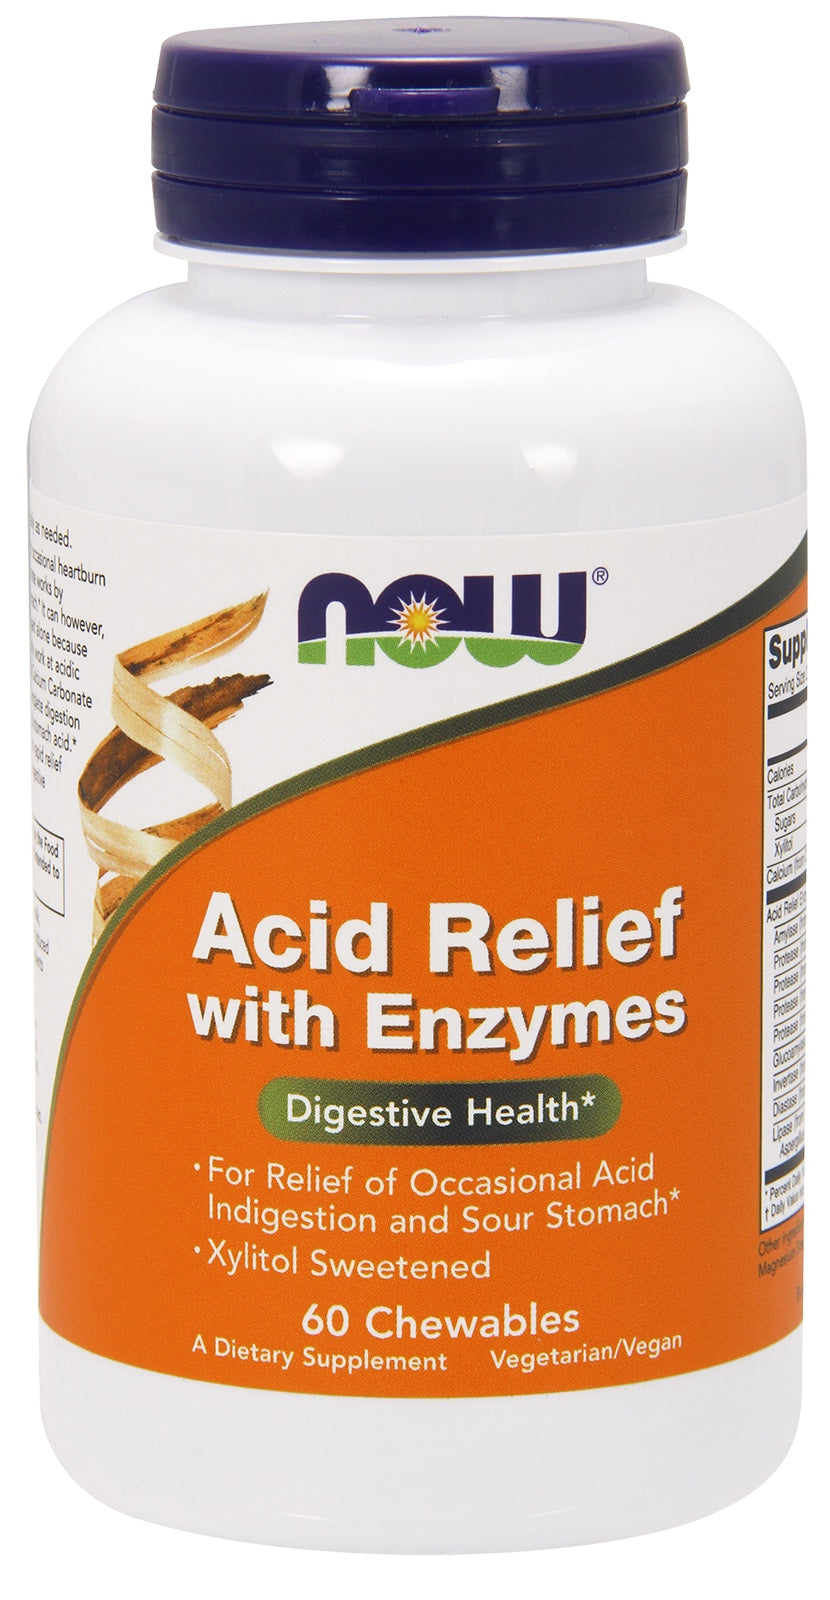 Acid Relief with Enzymes Chewables, 60 Chewables